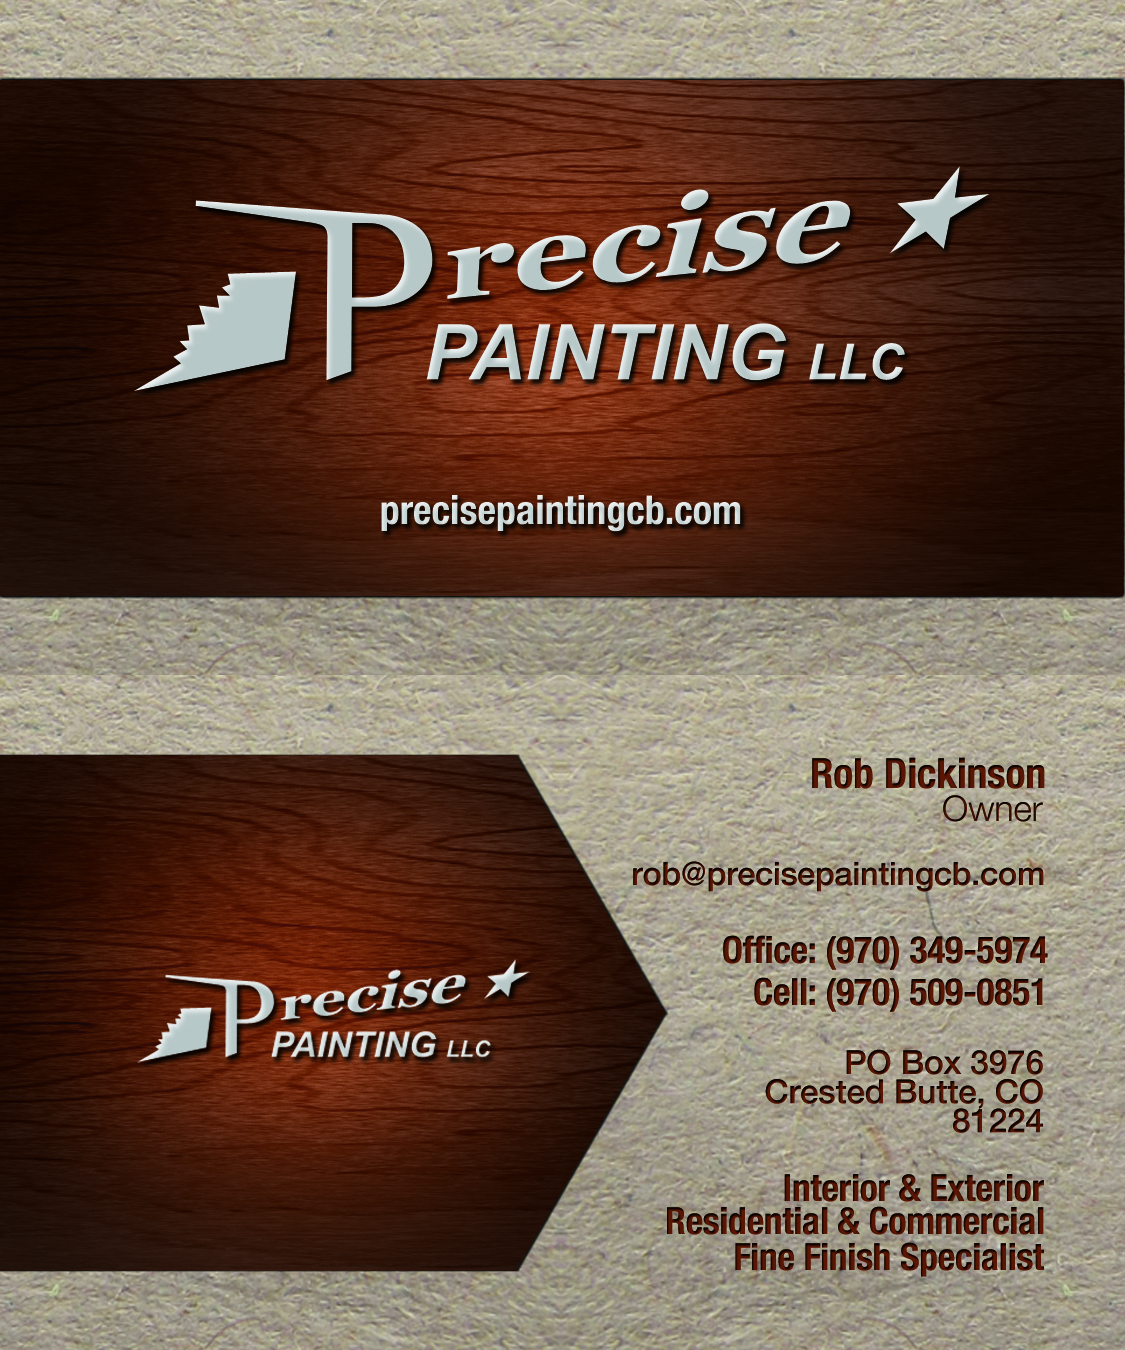 free templates for business cards to print at home On painting business cards